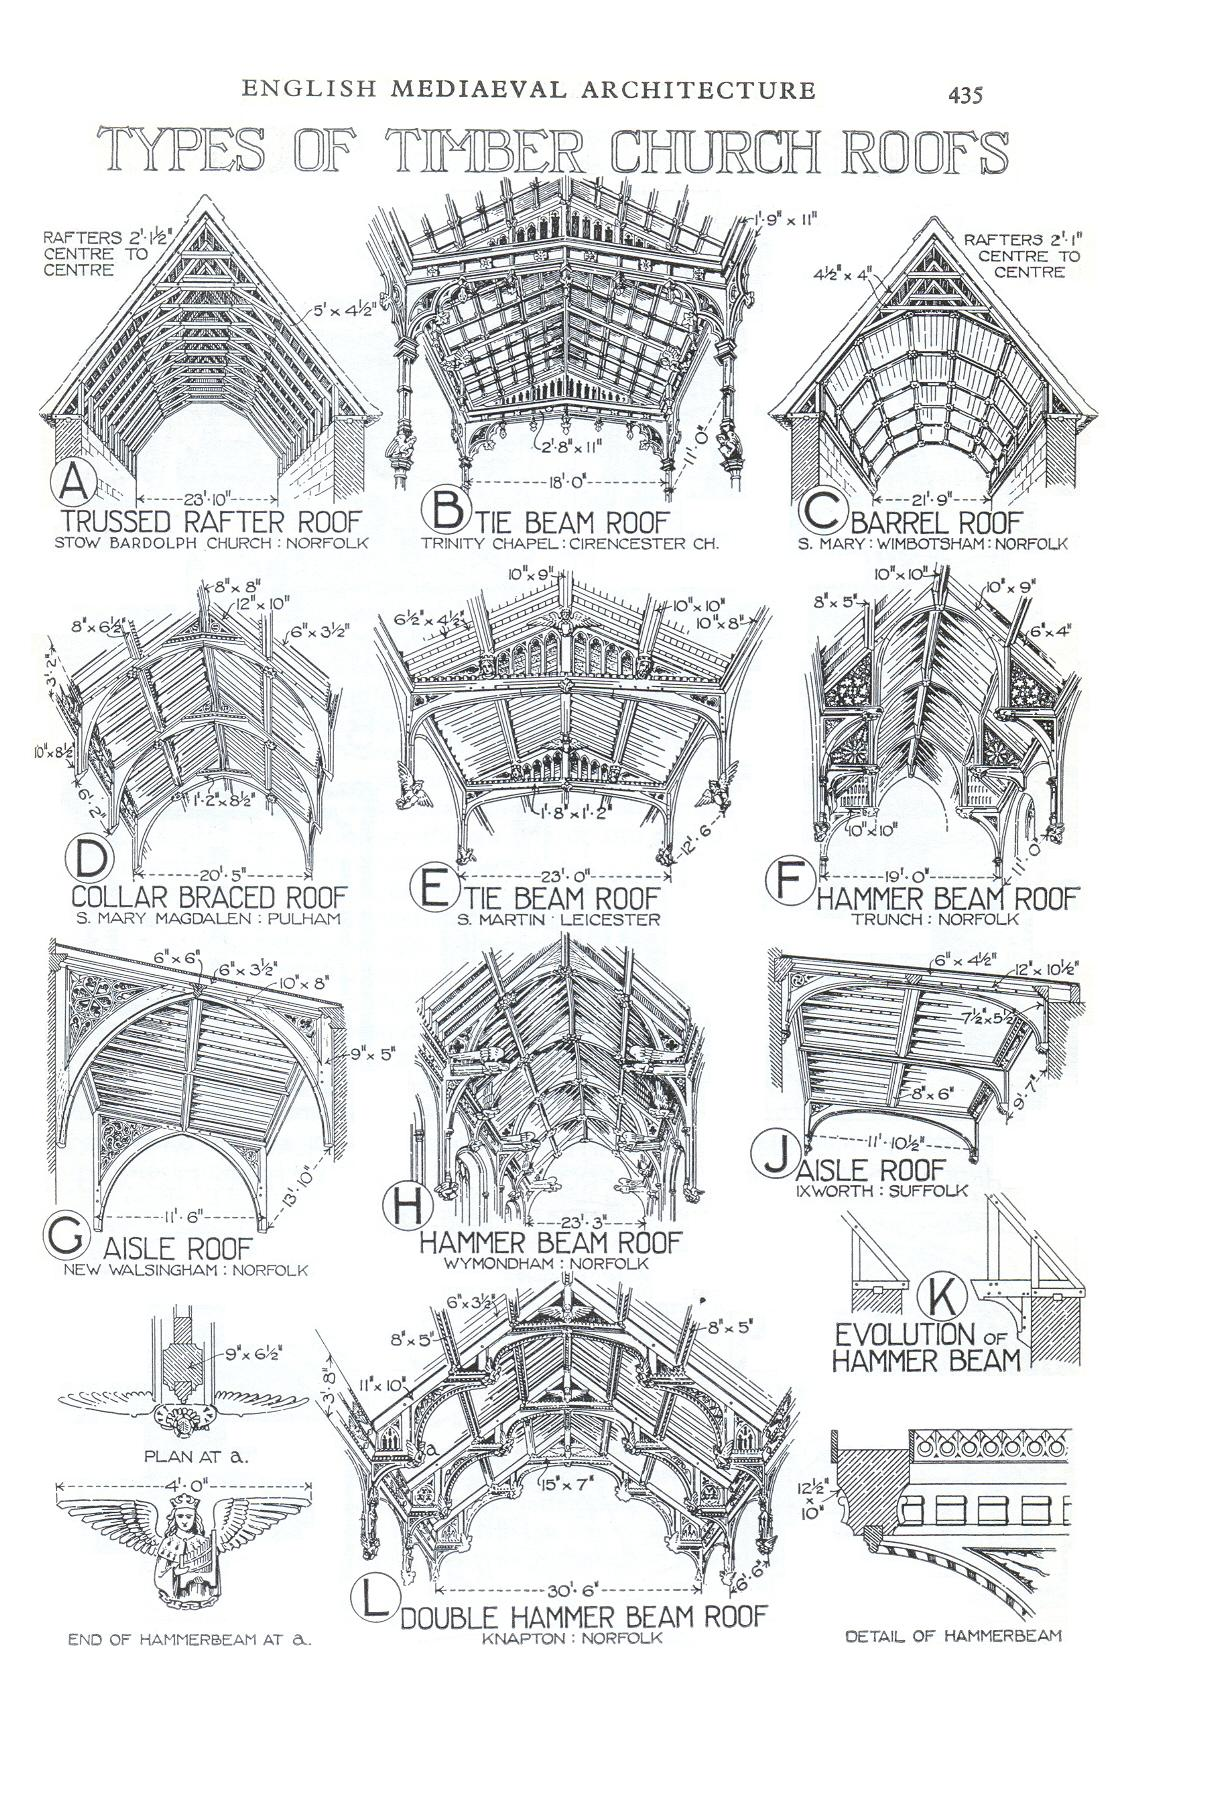 File Types Of Timber Church Roofs 435 Jpg Wikimedia Commons